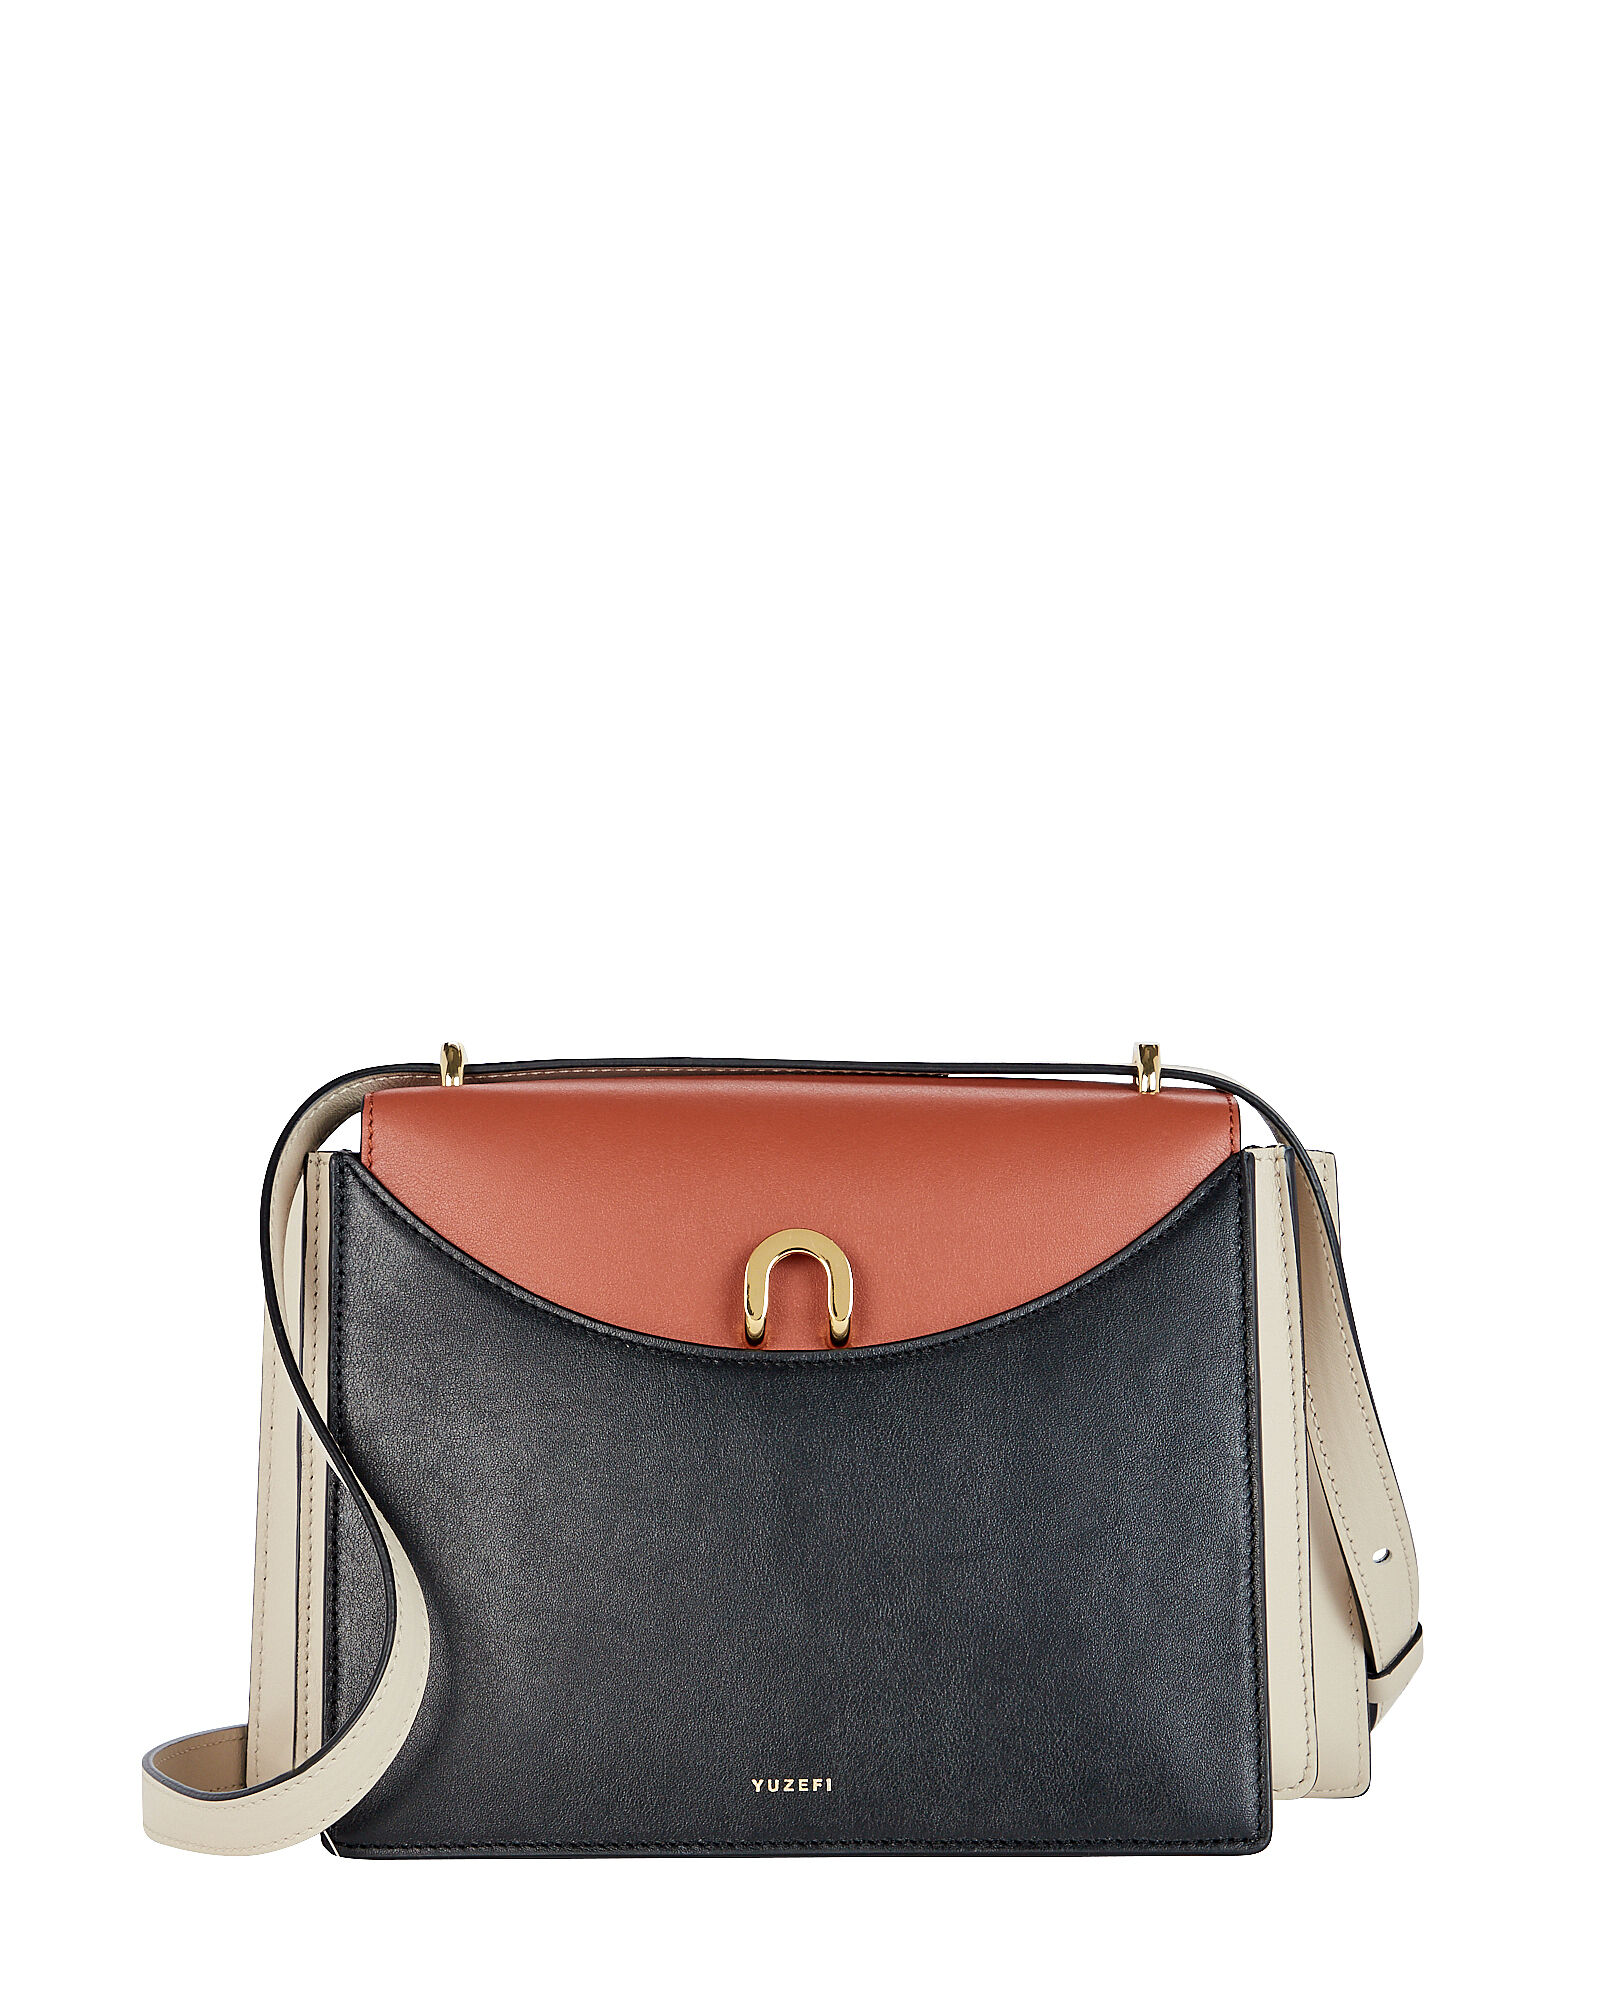 Eloise Leather Accordion Bag, BLACK/CAMEL/IVORY, hi-res